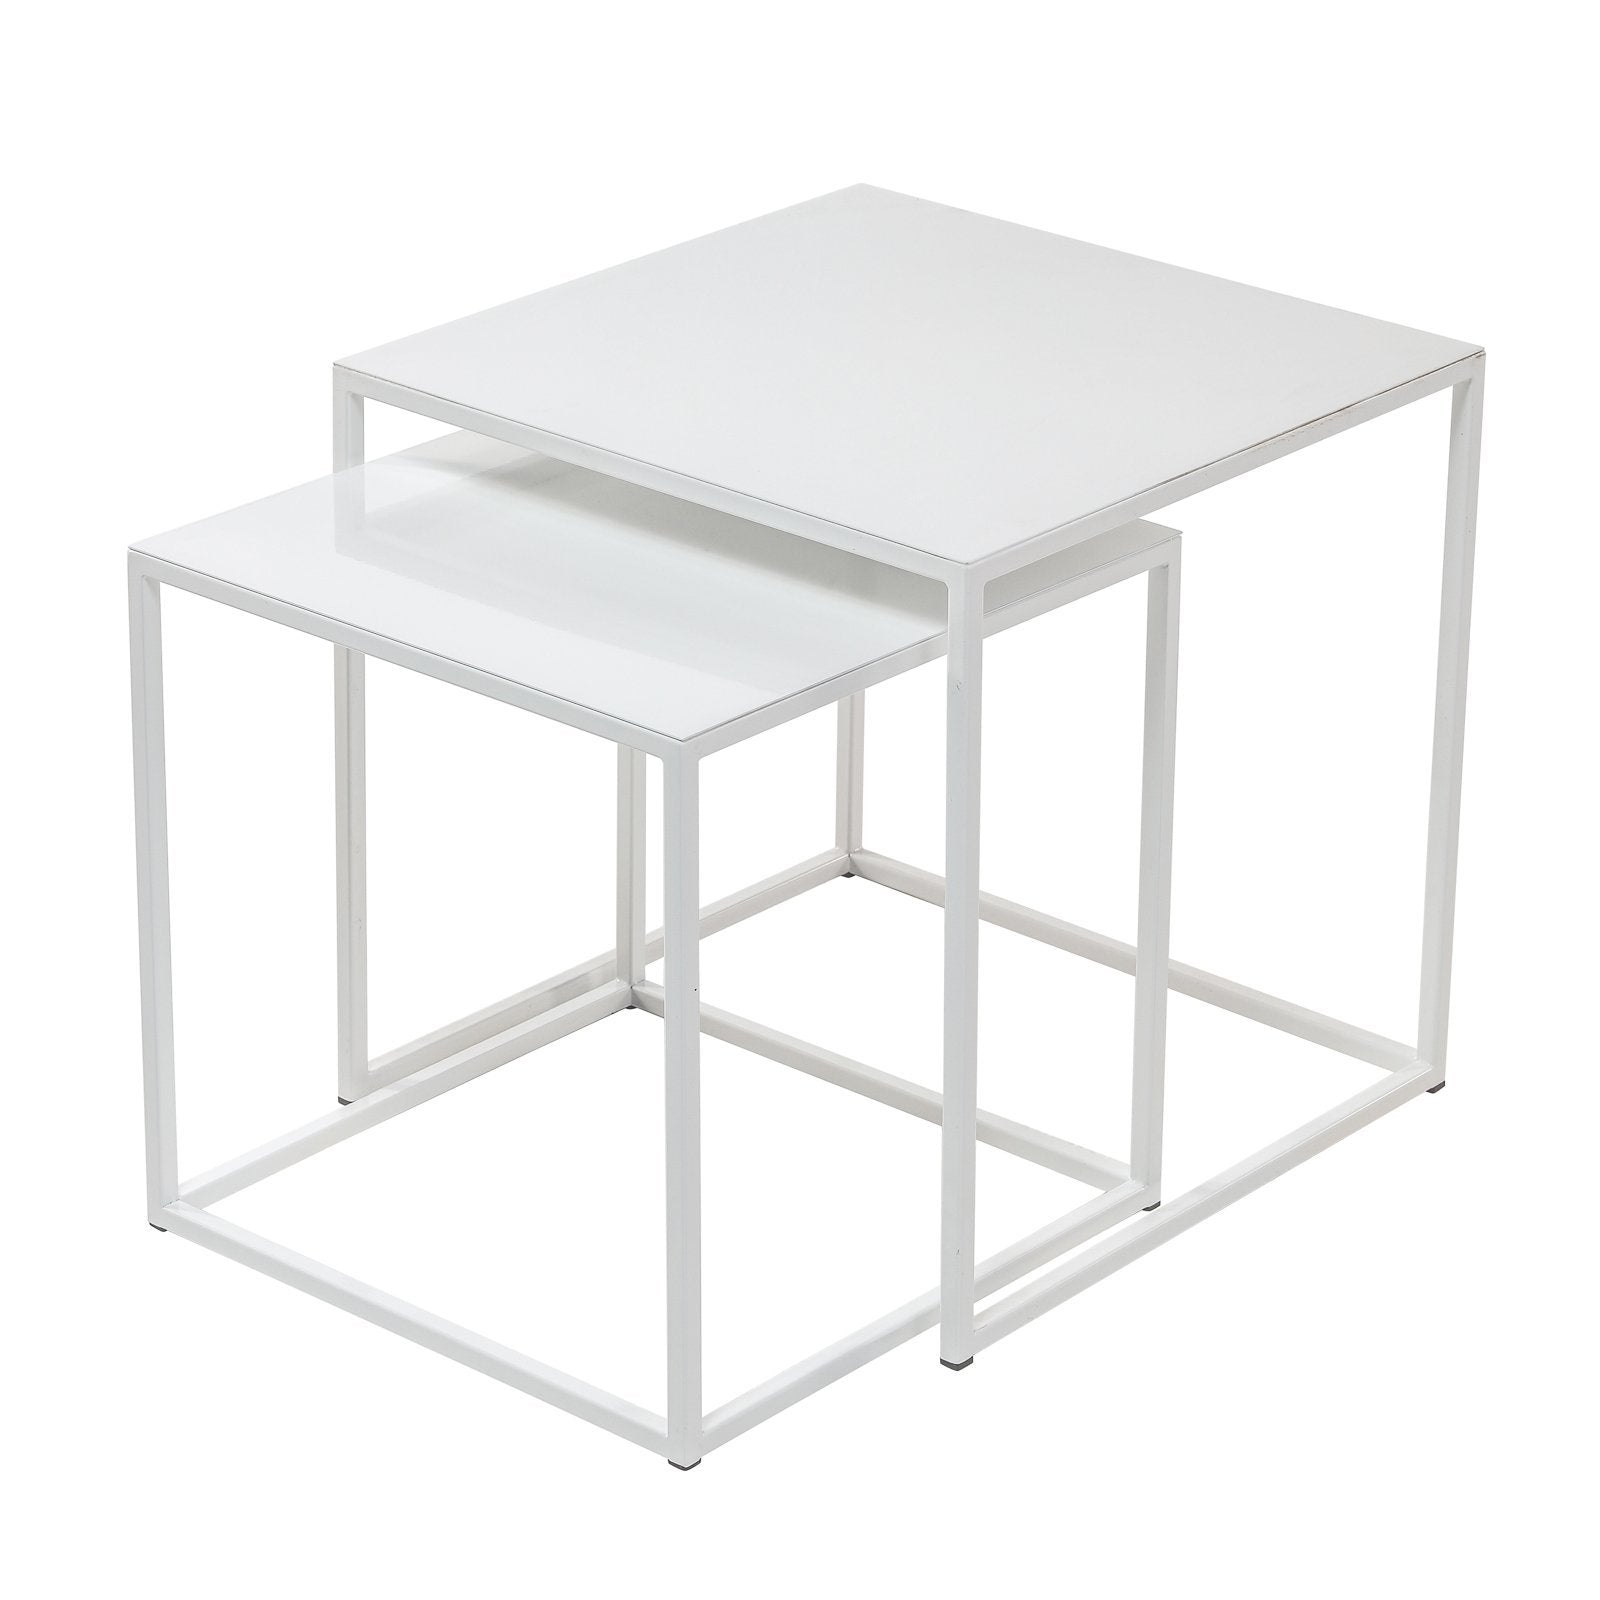 Frisco white nesting tables by patrick cain designs set of 2 tables side table frisco white nesting tables by patrick cain designs set of watchthetrailerfo